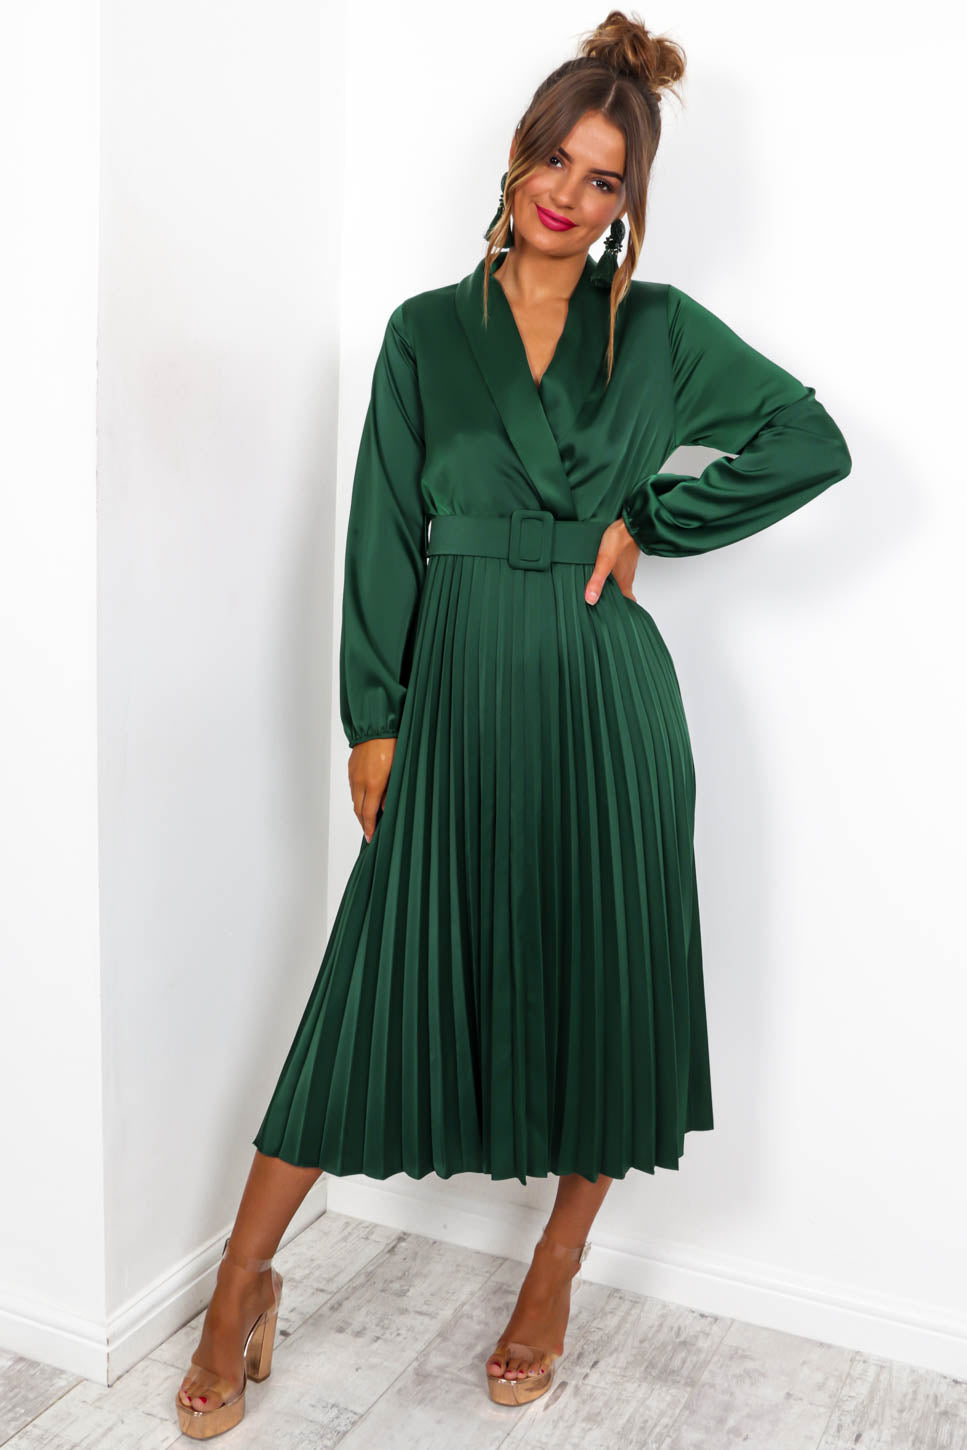 https://cdn.shopify.com/s/files/1/0062/6661/7925/files/product-video-norma-jean-midi-dress-in-forest.mp4?5114